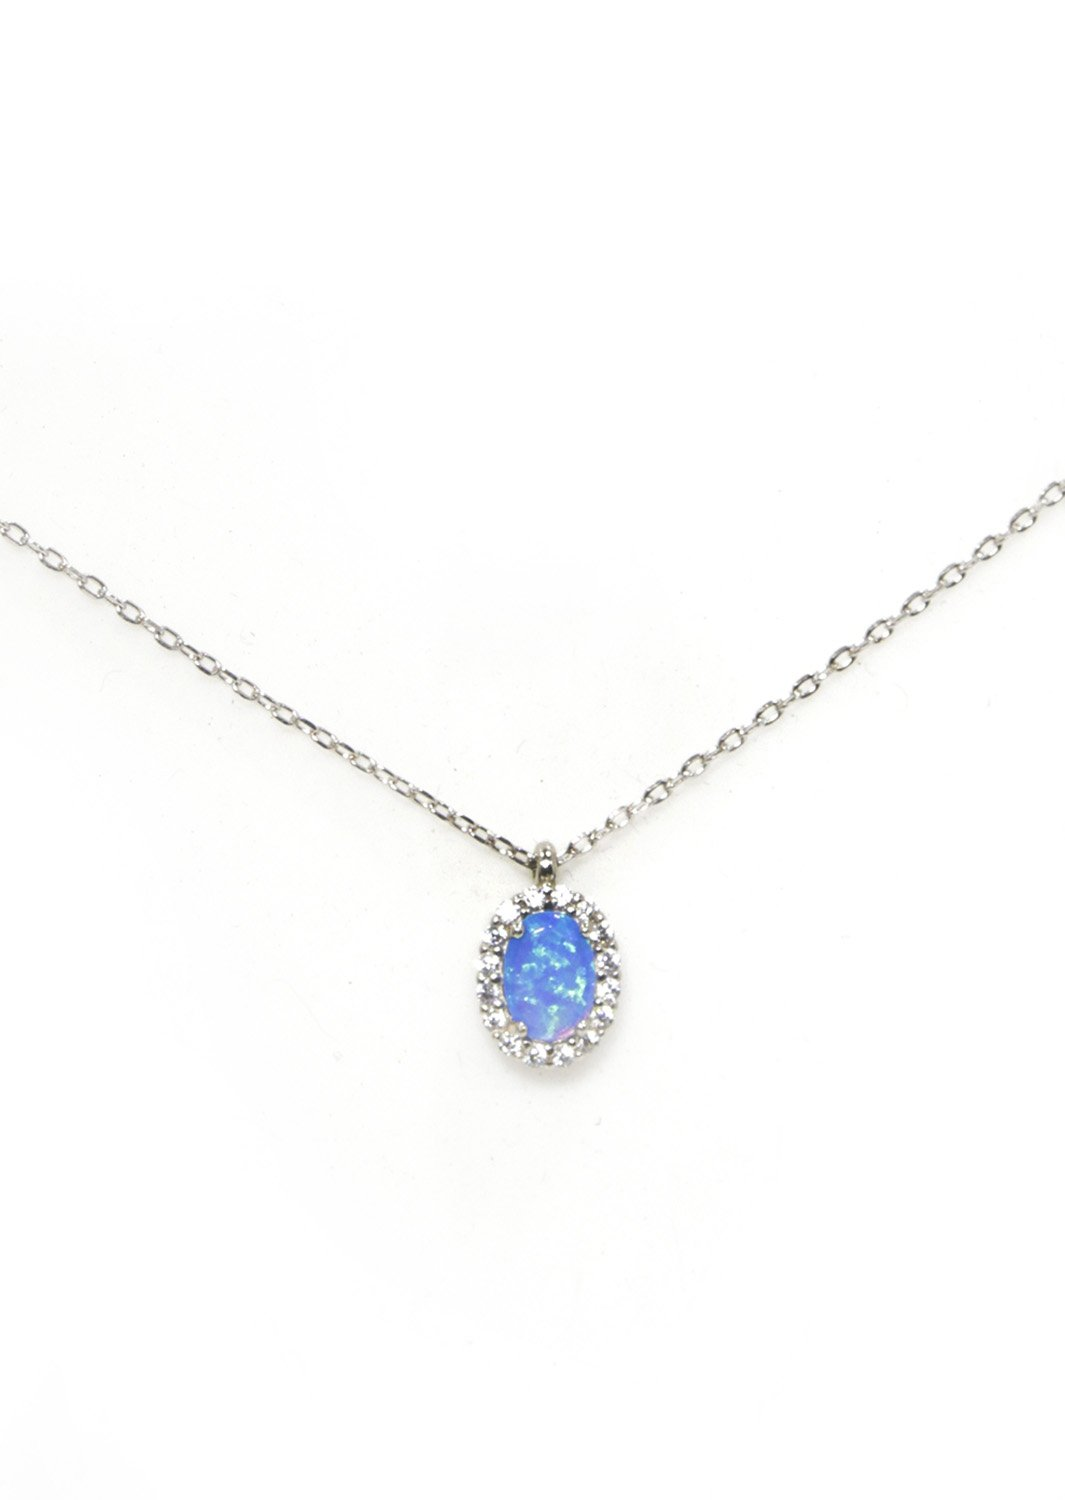 Opal pendant silver necklace with zircon